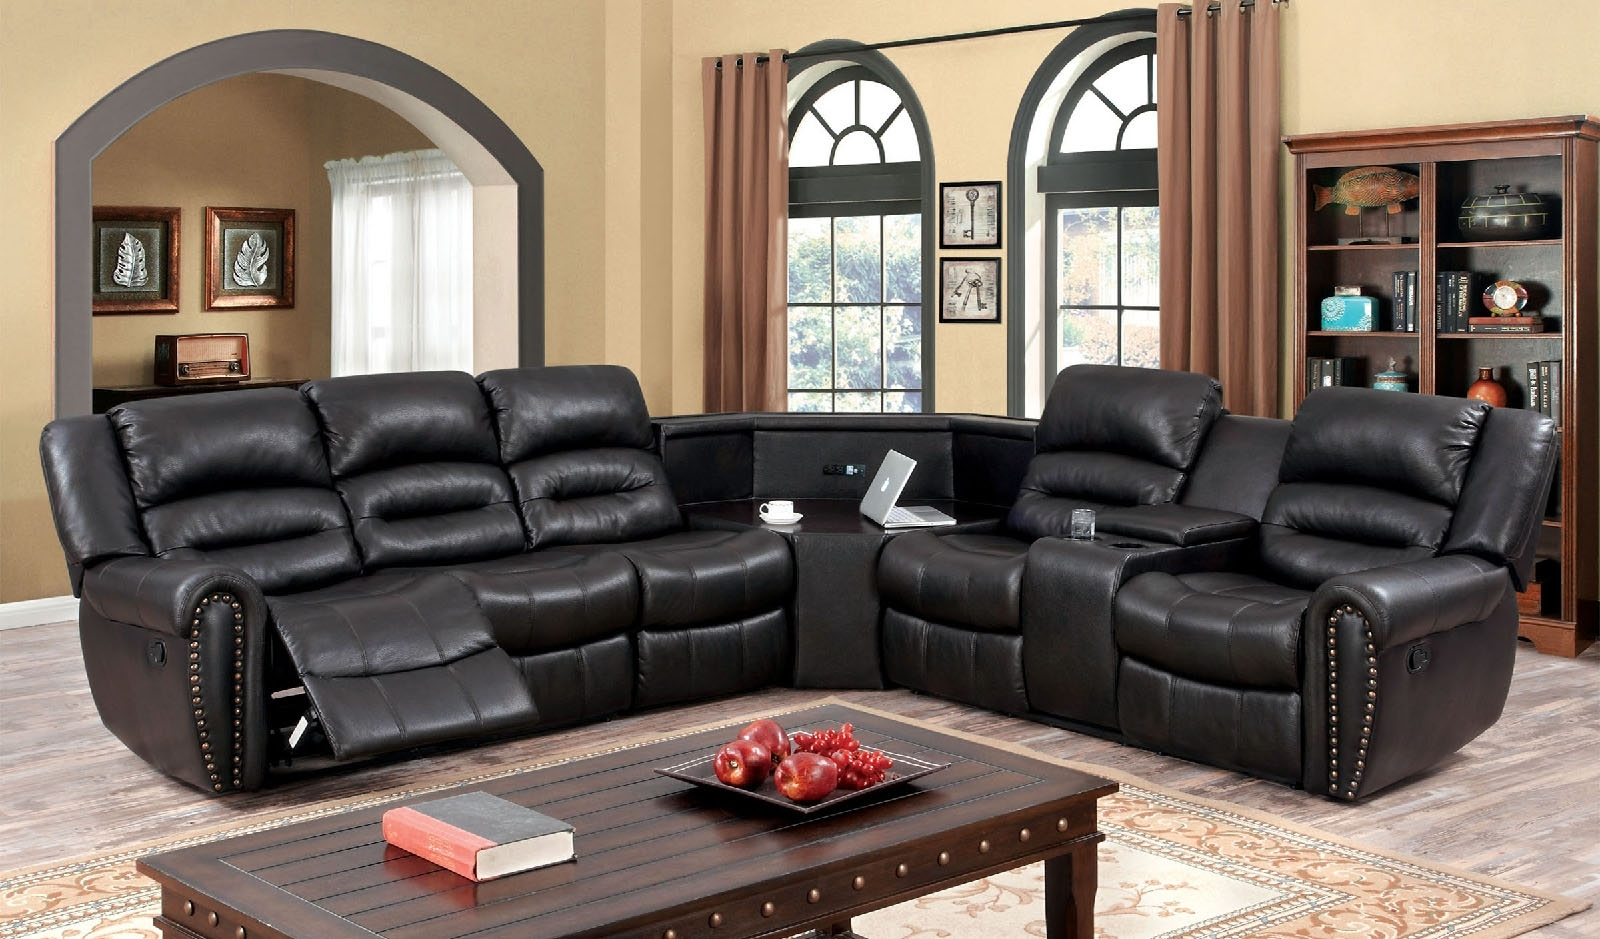 Sectional Sofas With Cup Holders Throughout Most Popular Double Recliner With Cup Holders Fabric Reclining Sectional (View 12 of 15)